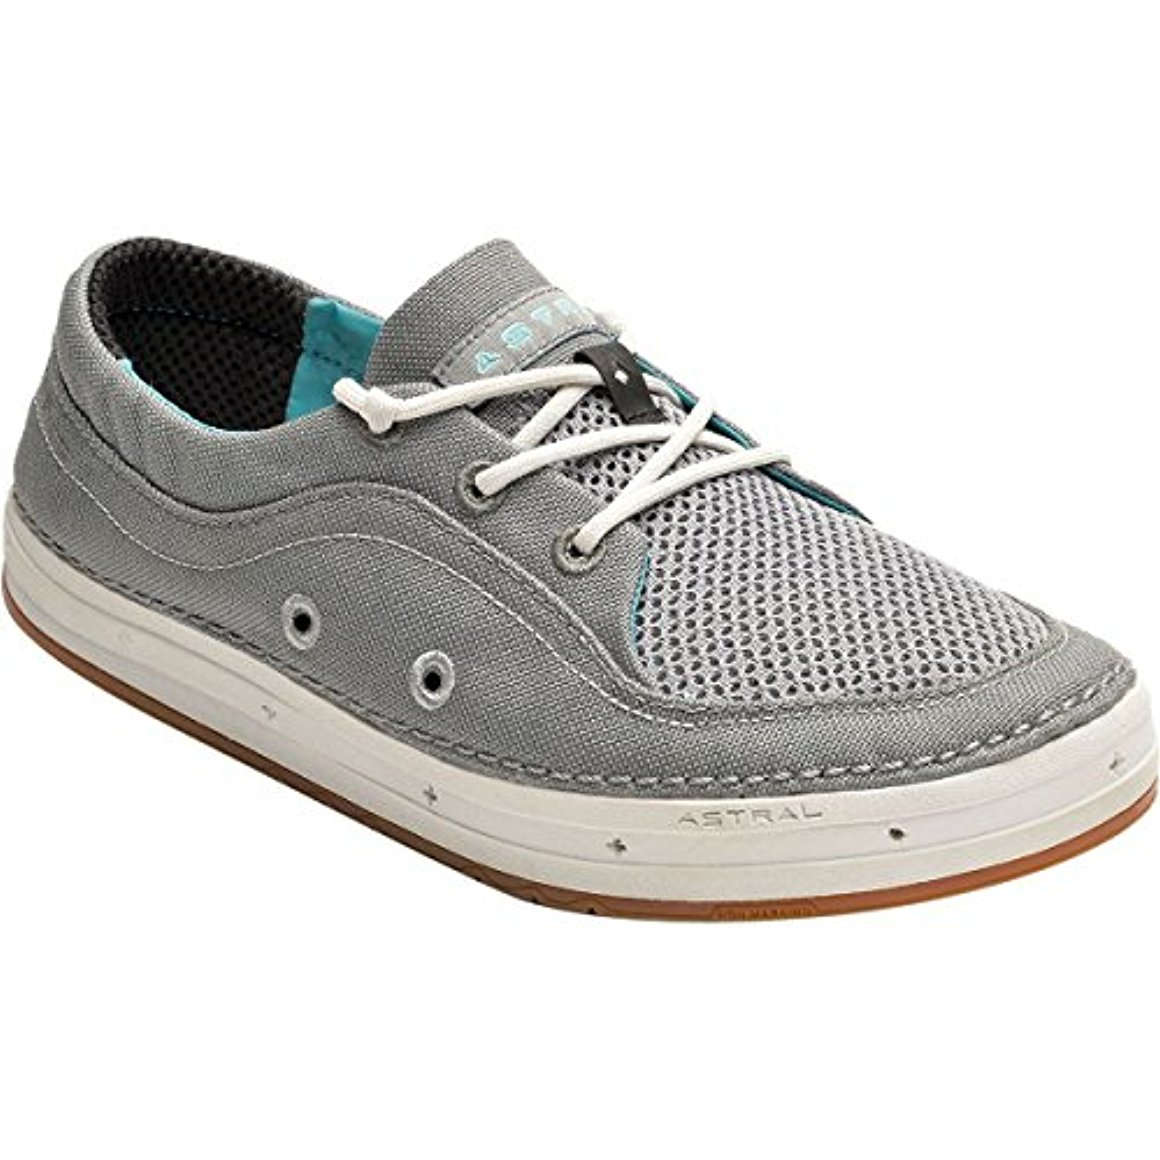 Astral Porter Water Shoe - Women's Gray/Turquoise, 6.0